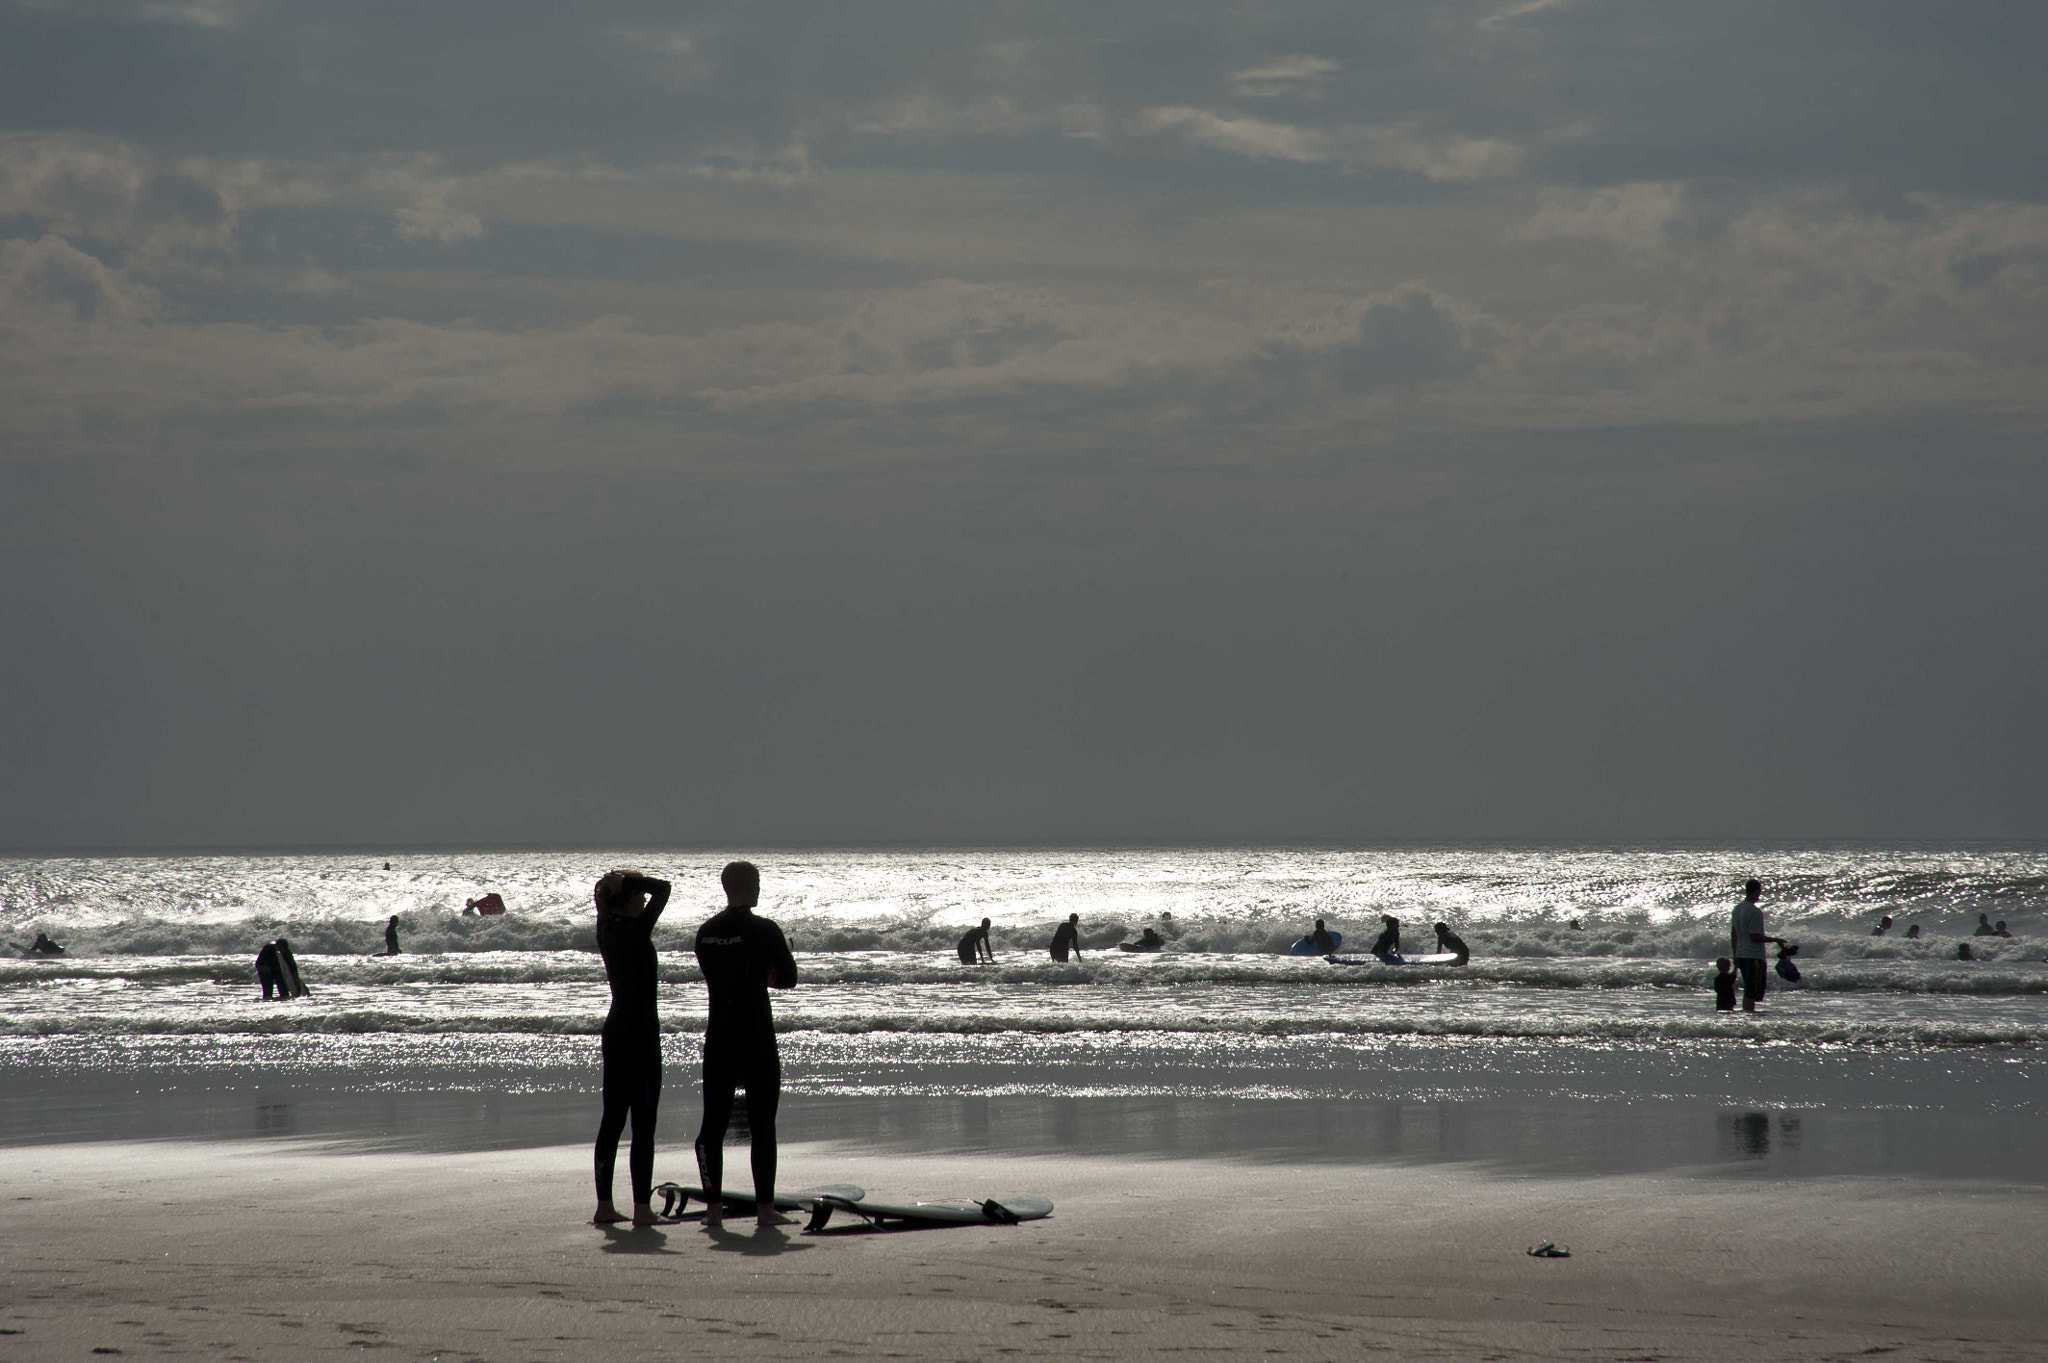 Photograph Checking the surf by Sarah Carter on 500px